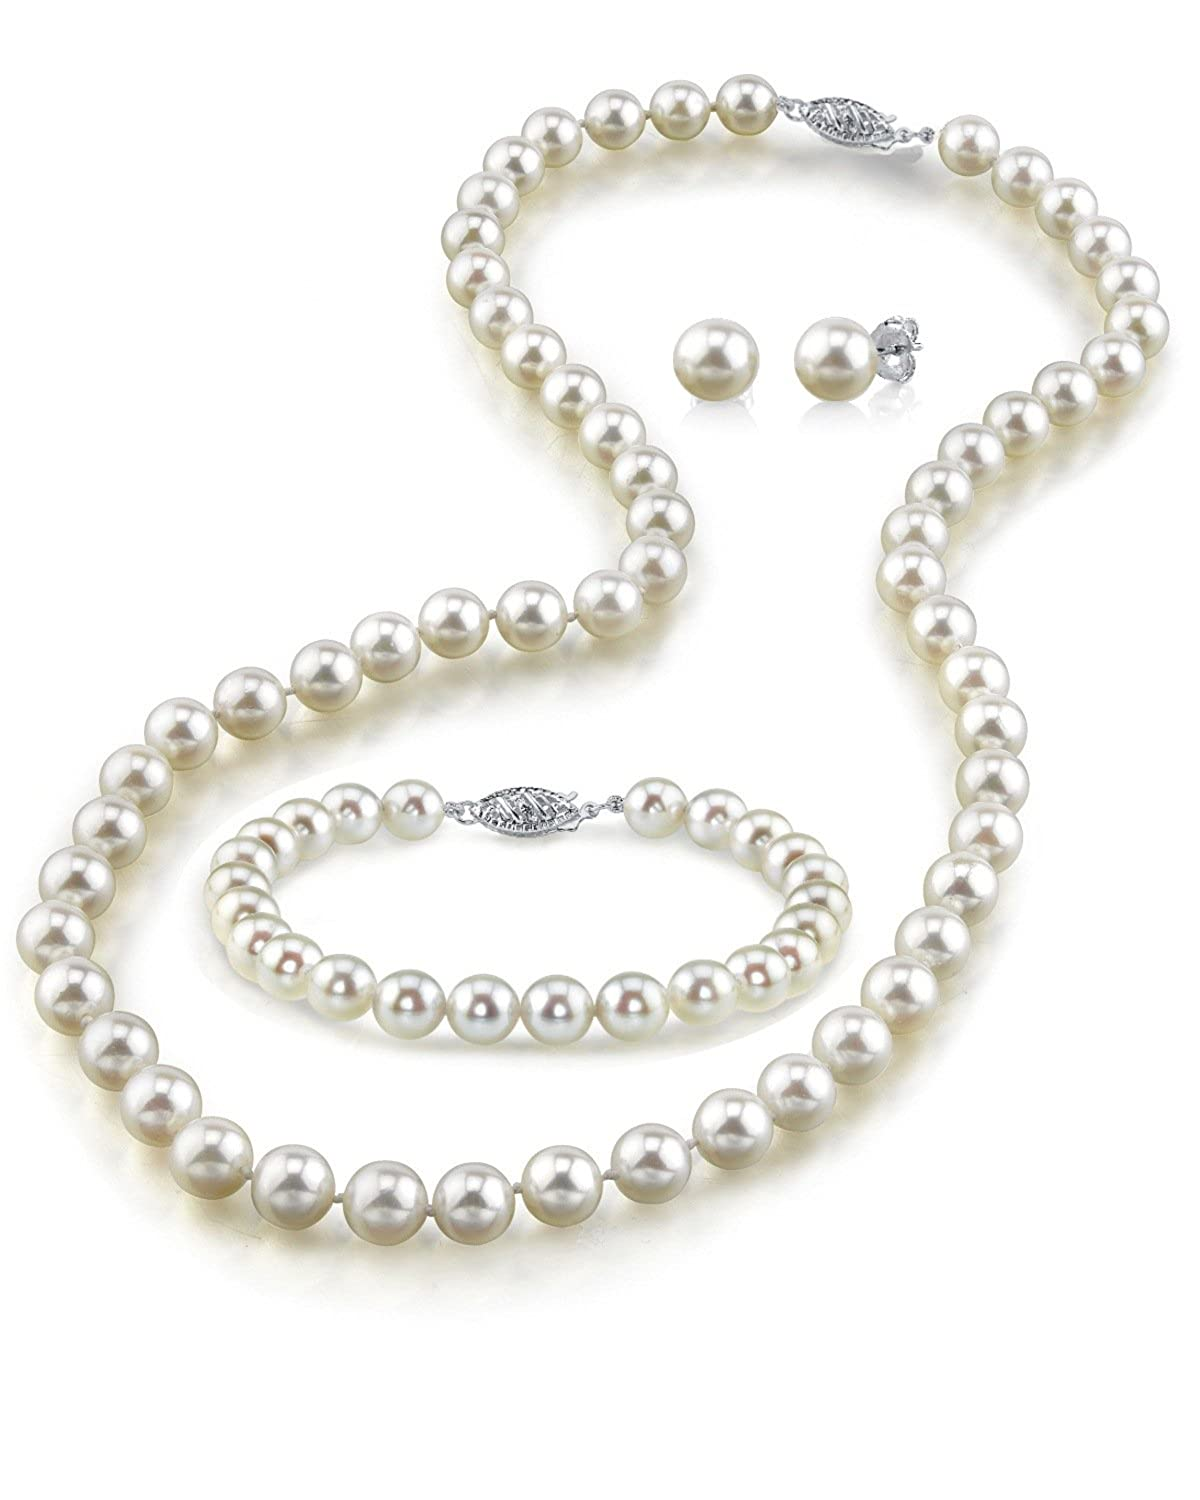 "14K Gold 7-8mm White Freshwater Cultured Pearl Necklace, Bracelet & Earrings Set, 17"" - AAAA Quality"